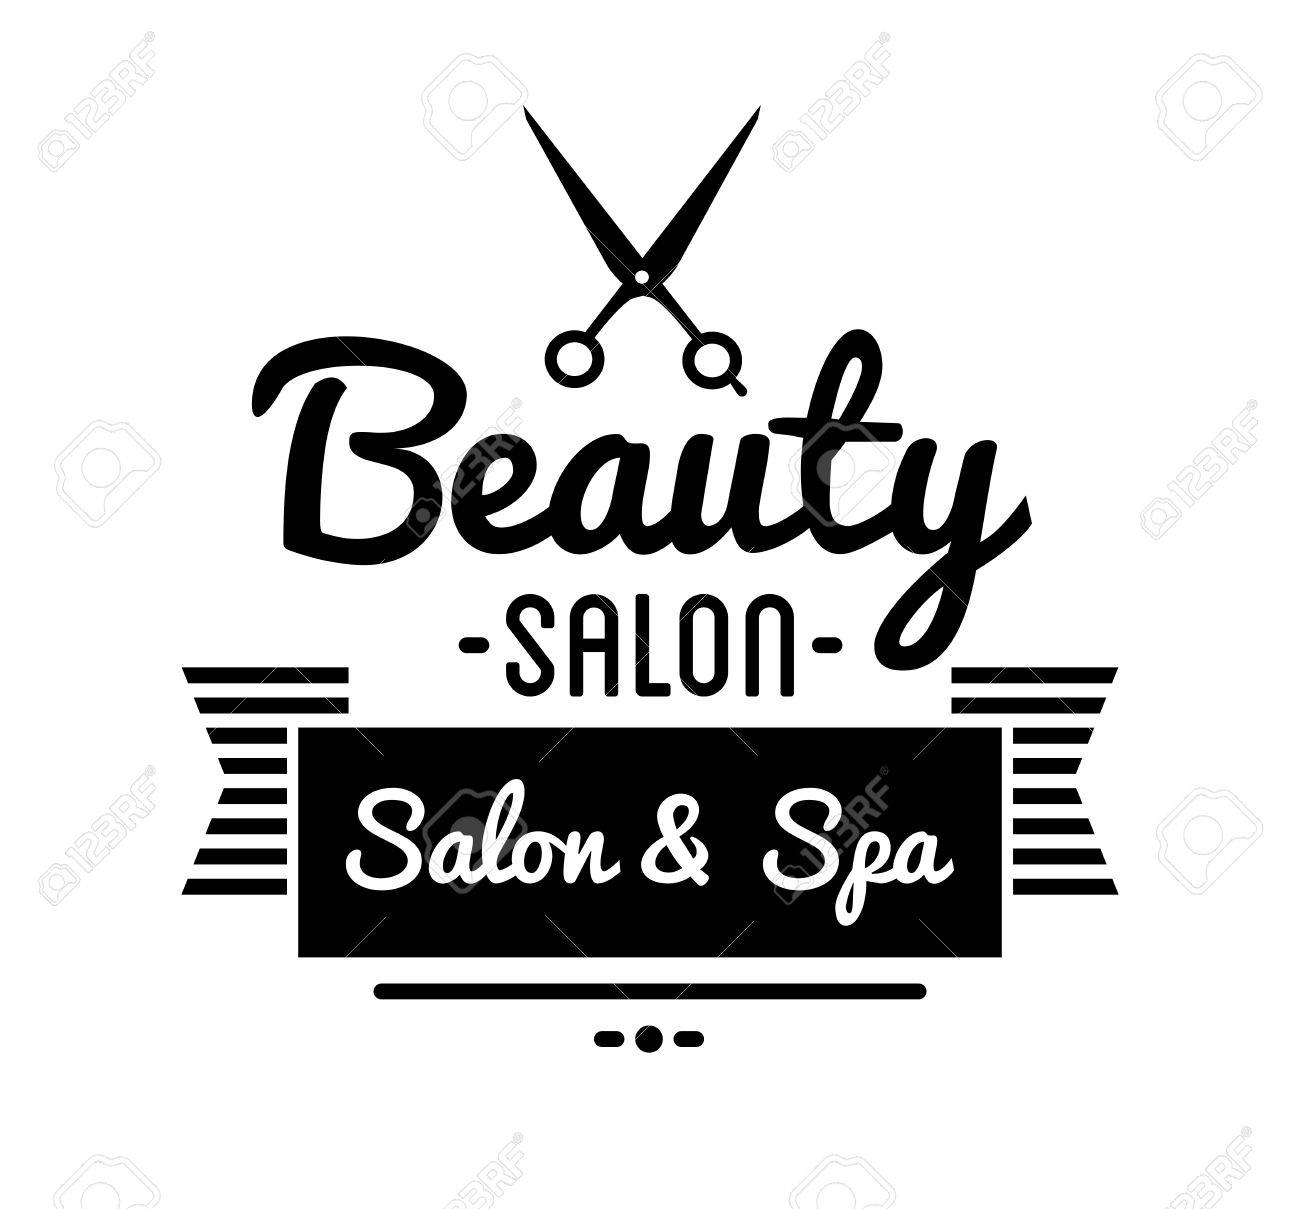 Clip art vector of vintage barber shop logo graphics and icon vector - Vector Vintage Barber Shop And Beauty Spa Salon Badge Vector Element Isolated Icons On White Background